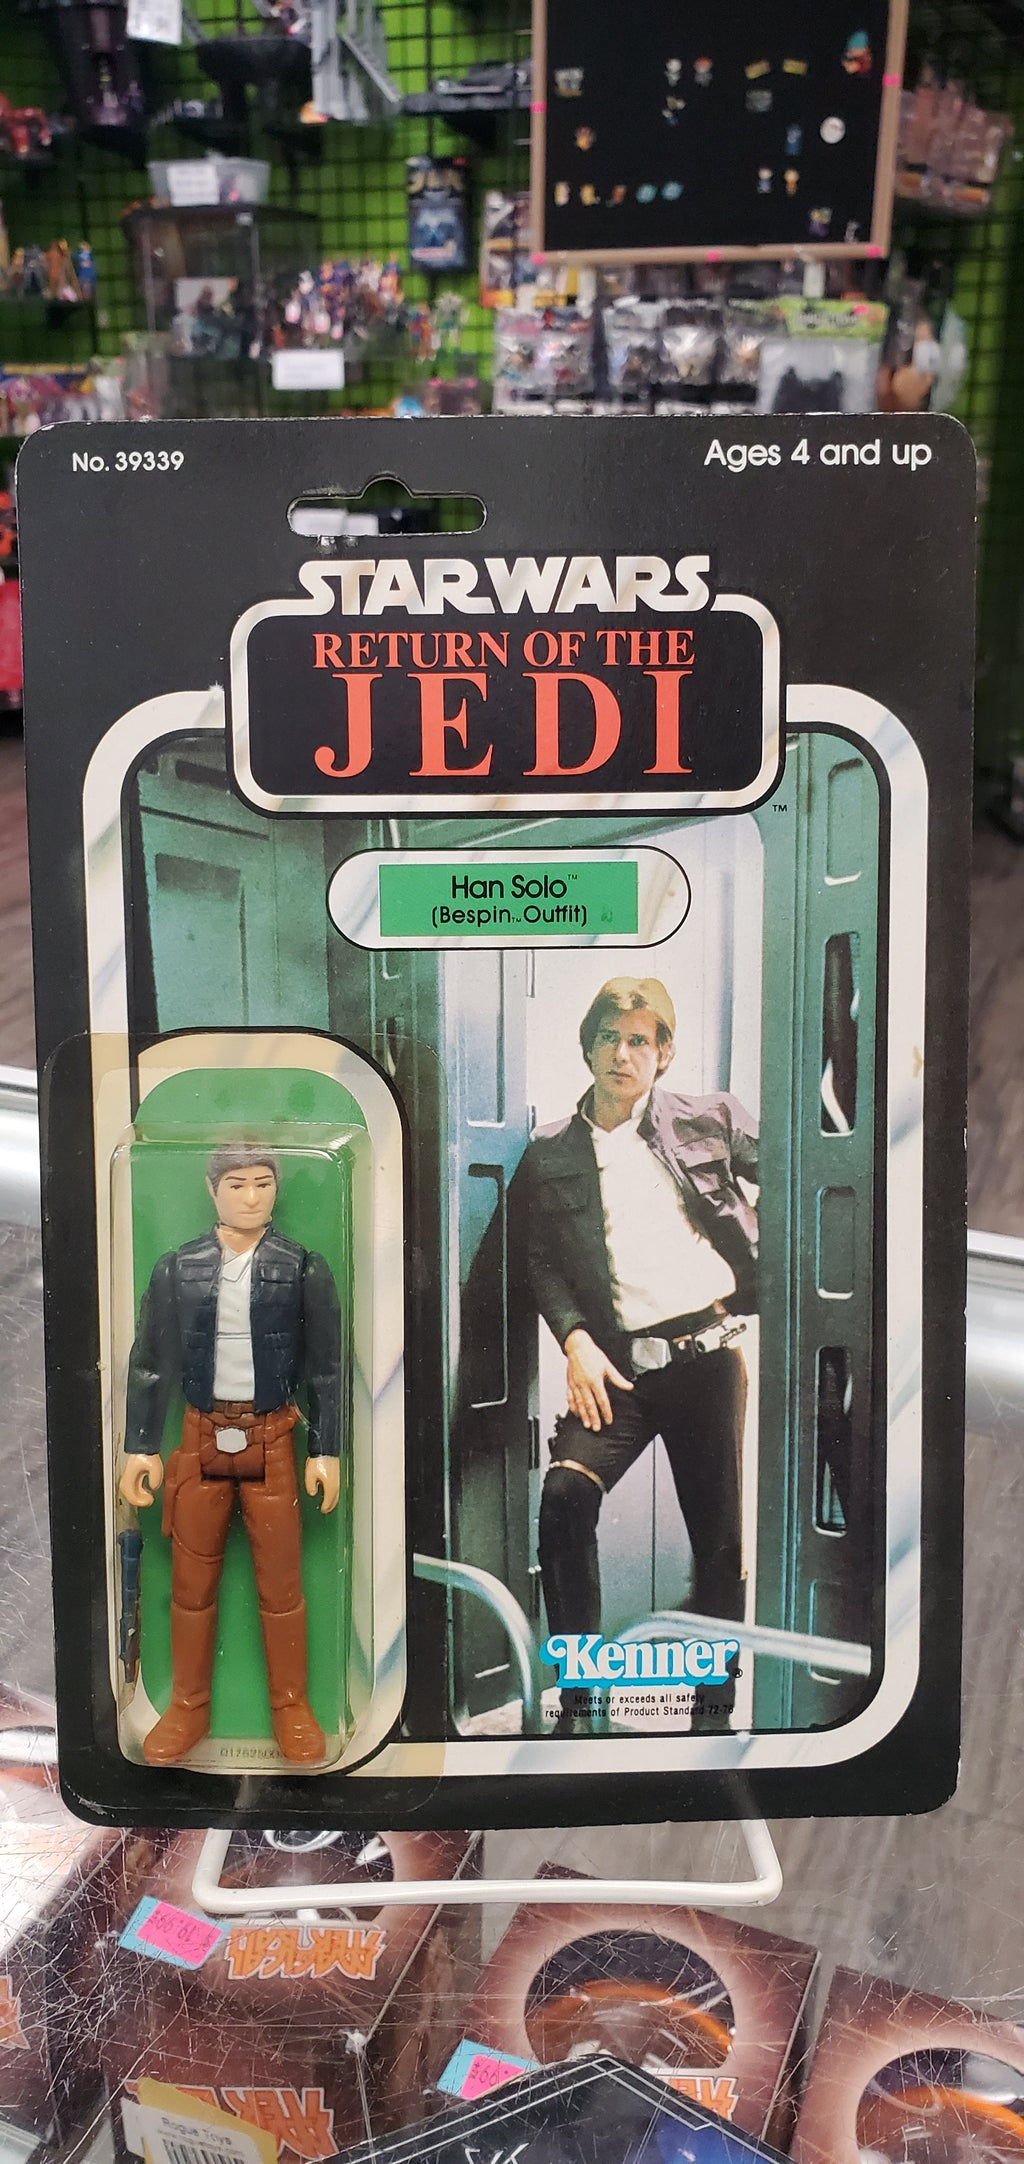 Kenner Star Wars Return of the Jedi Han Solo (bespin)